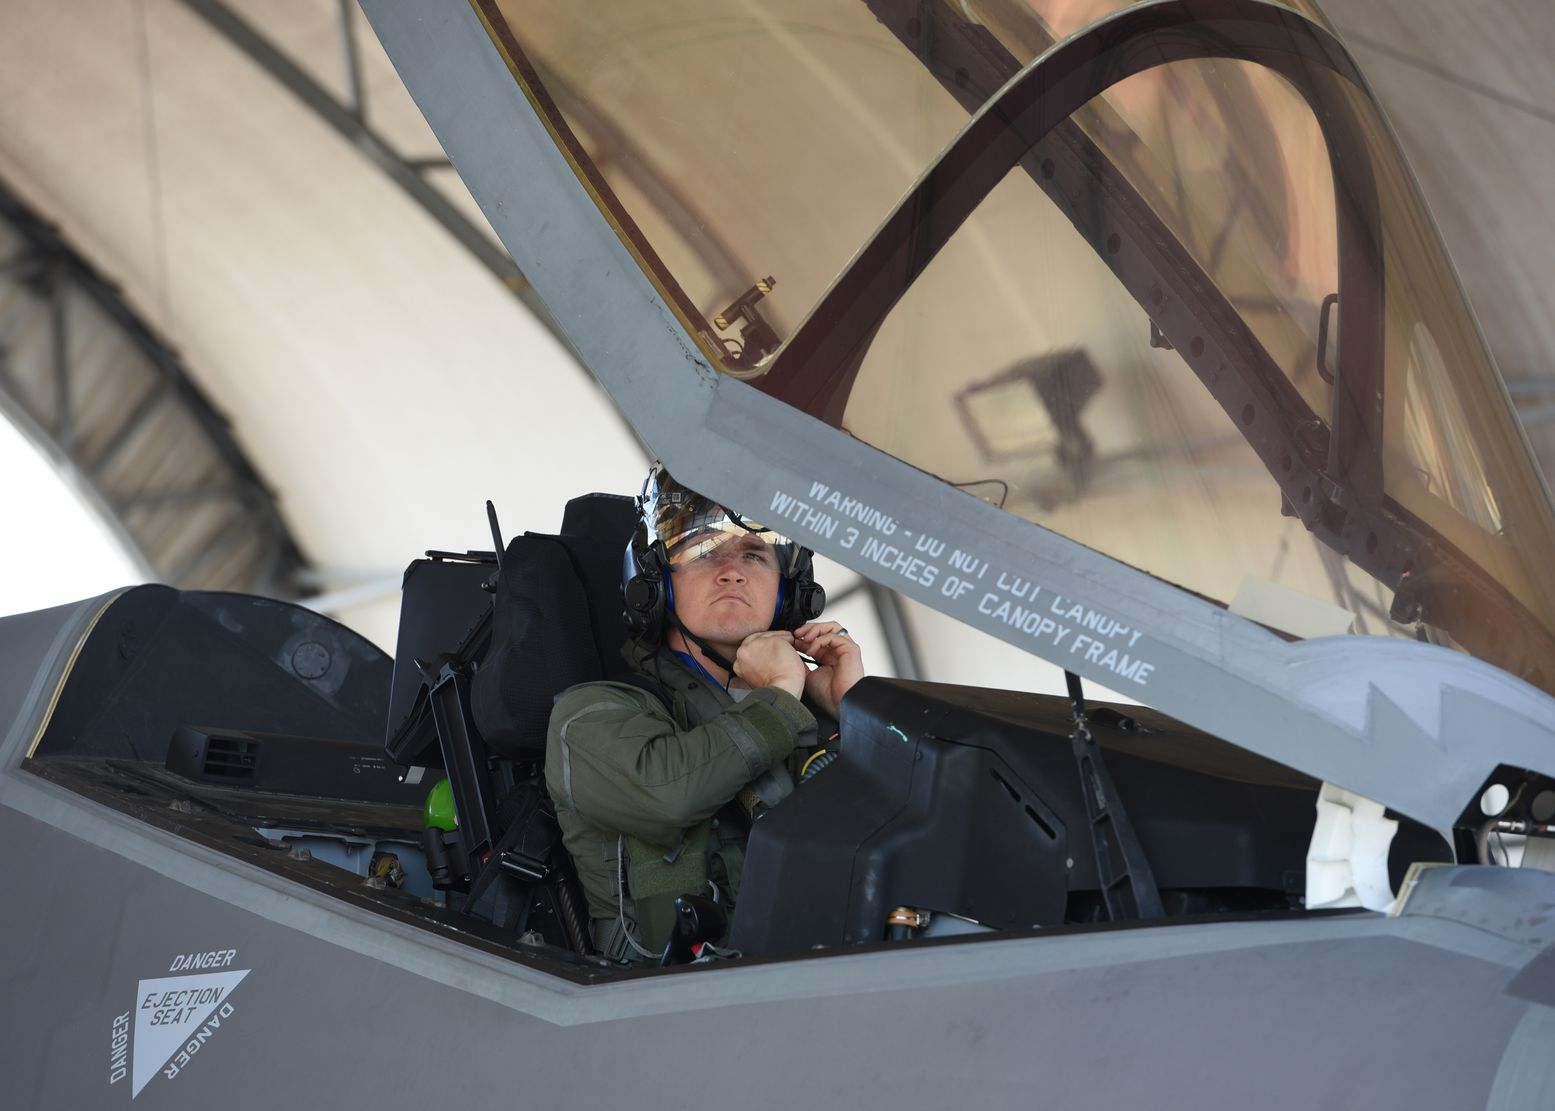 Check out This Amazing Helmet That Makes the F-35 a High-Tech Weapon